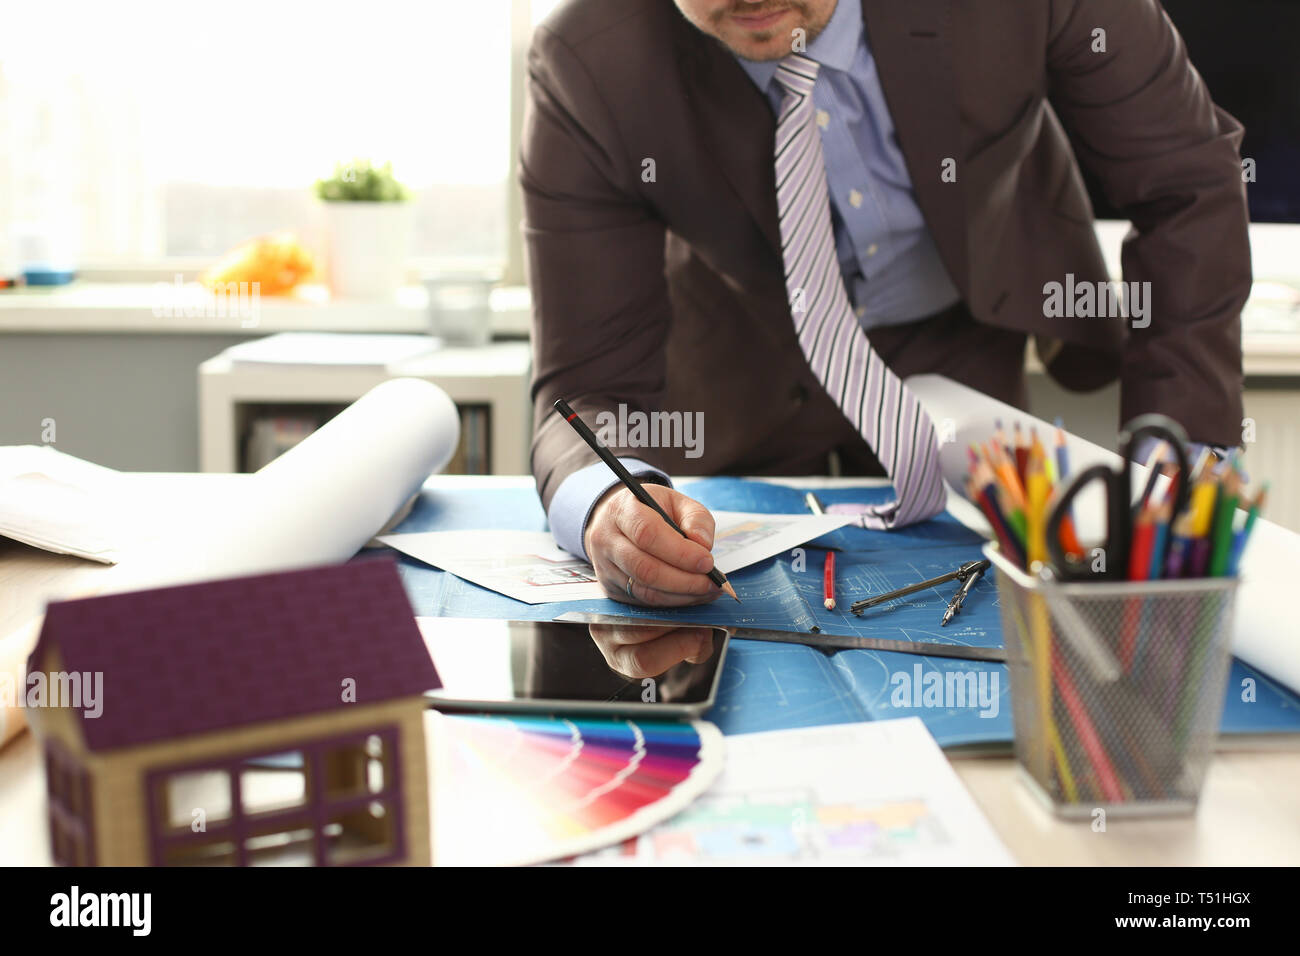 Workman Drafting Building Reconstruction Project - Stock Image